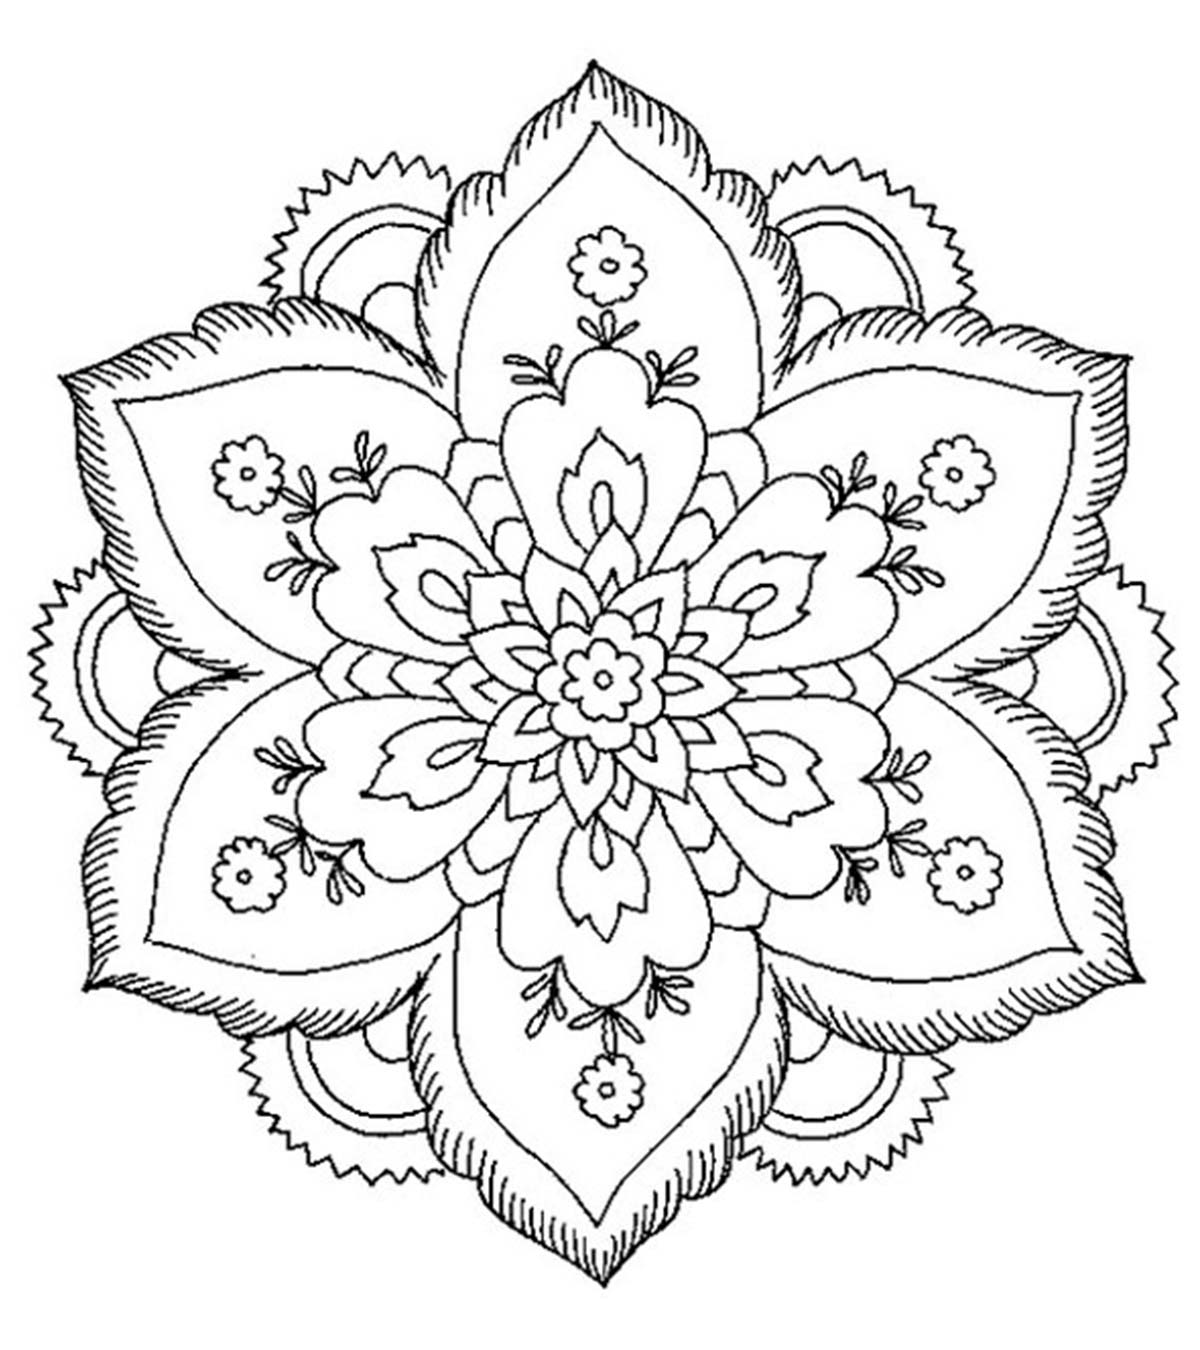 abstract coloring pages for kids abstract coloring pages free download on clipartmag for coloring abstract pages kids